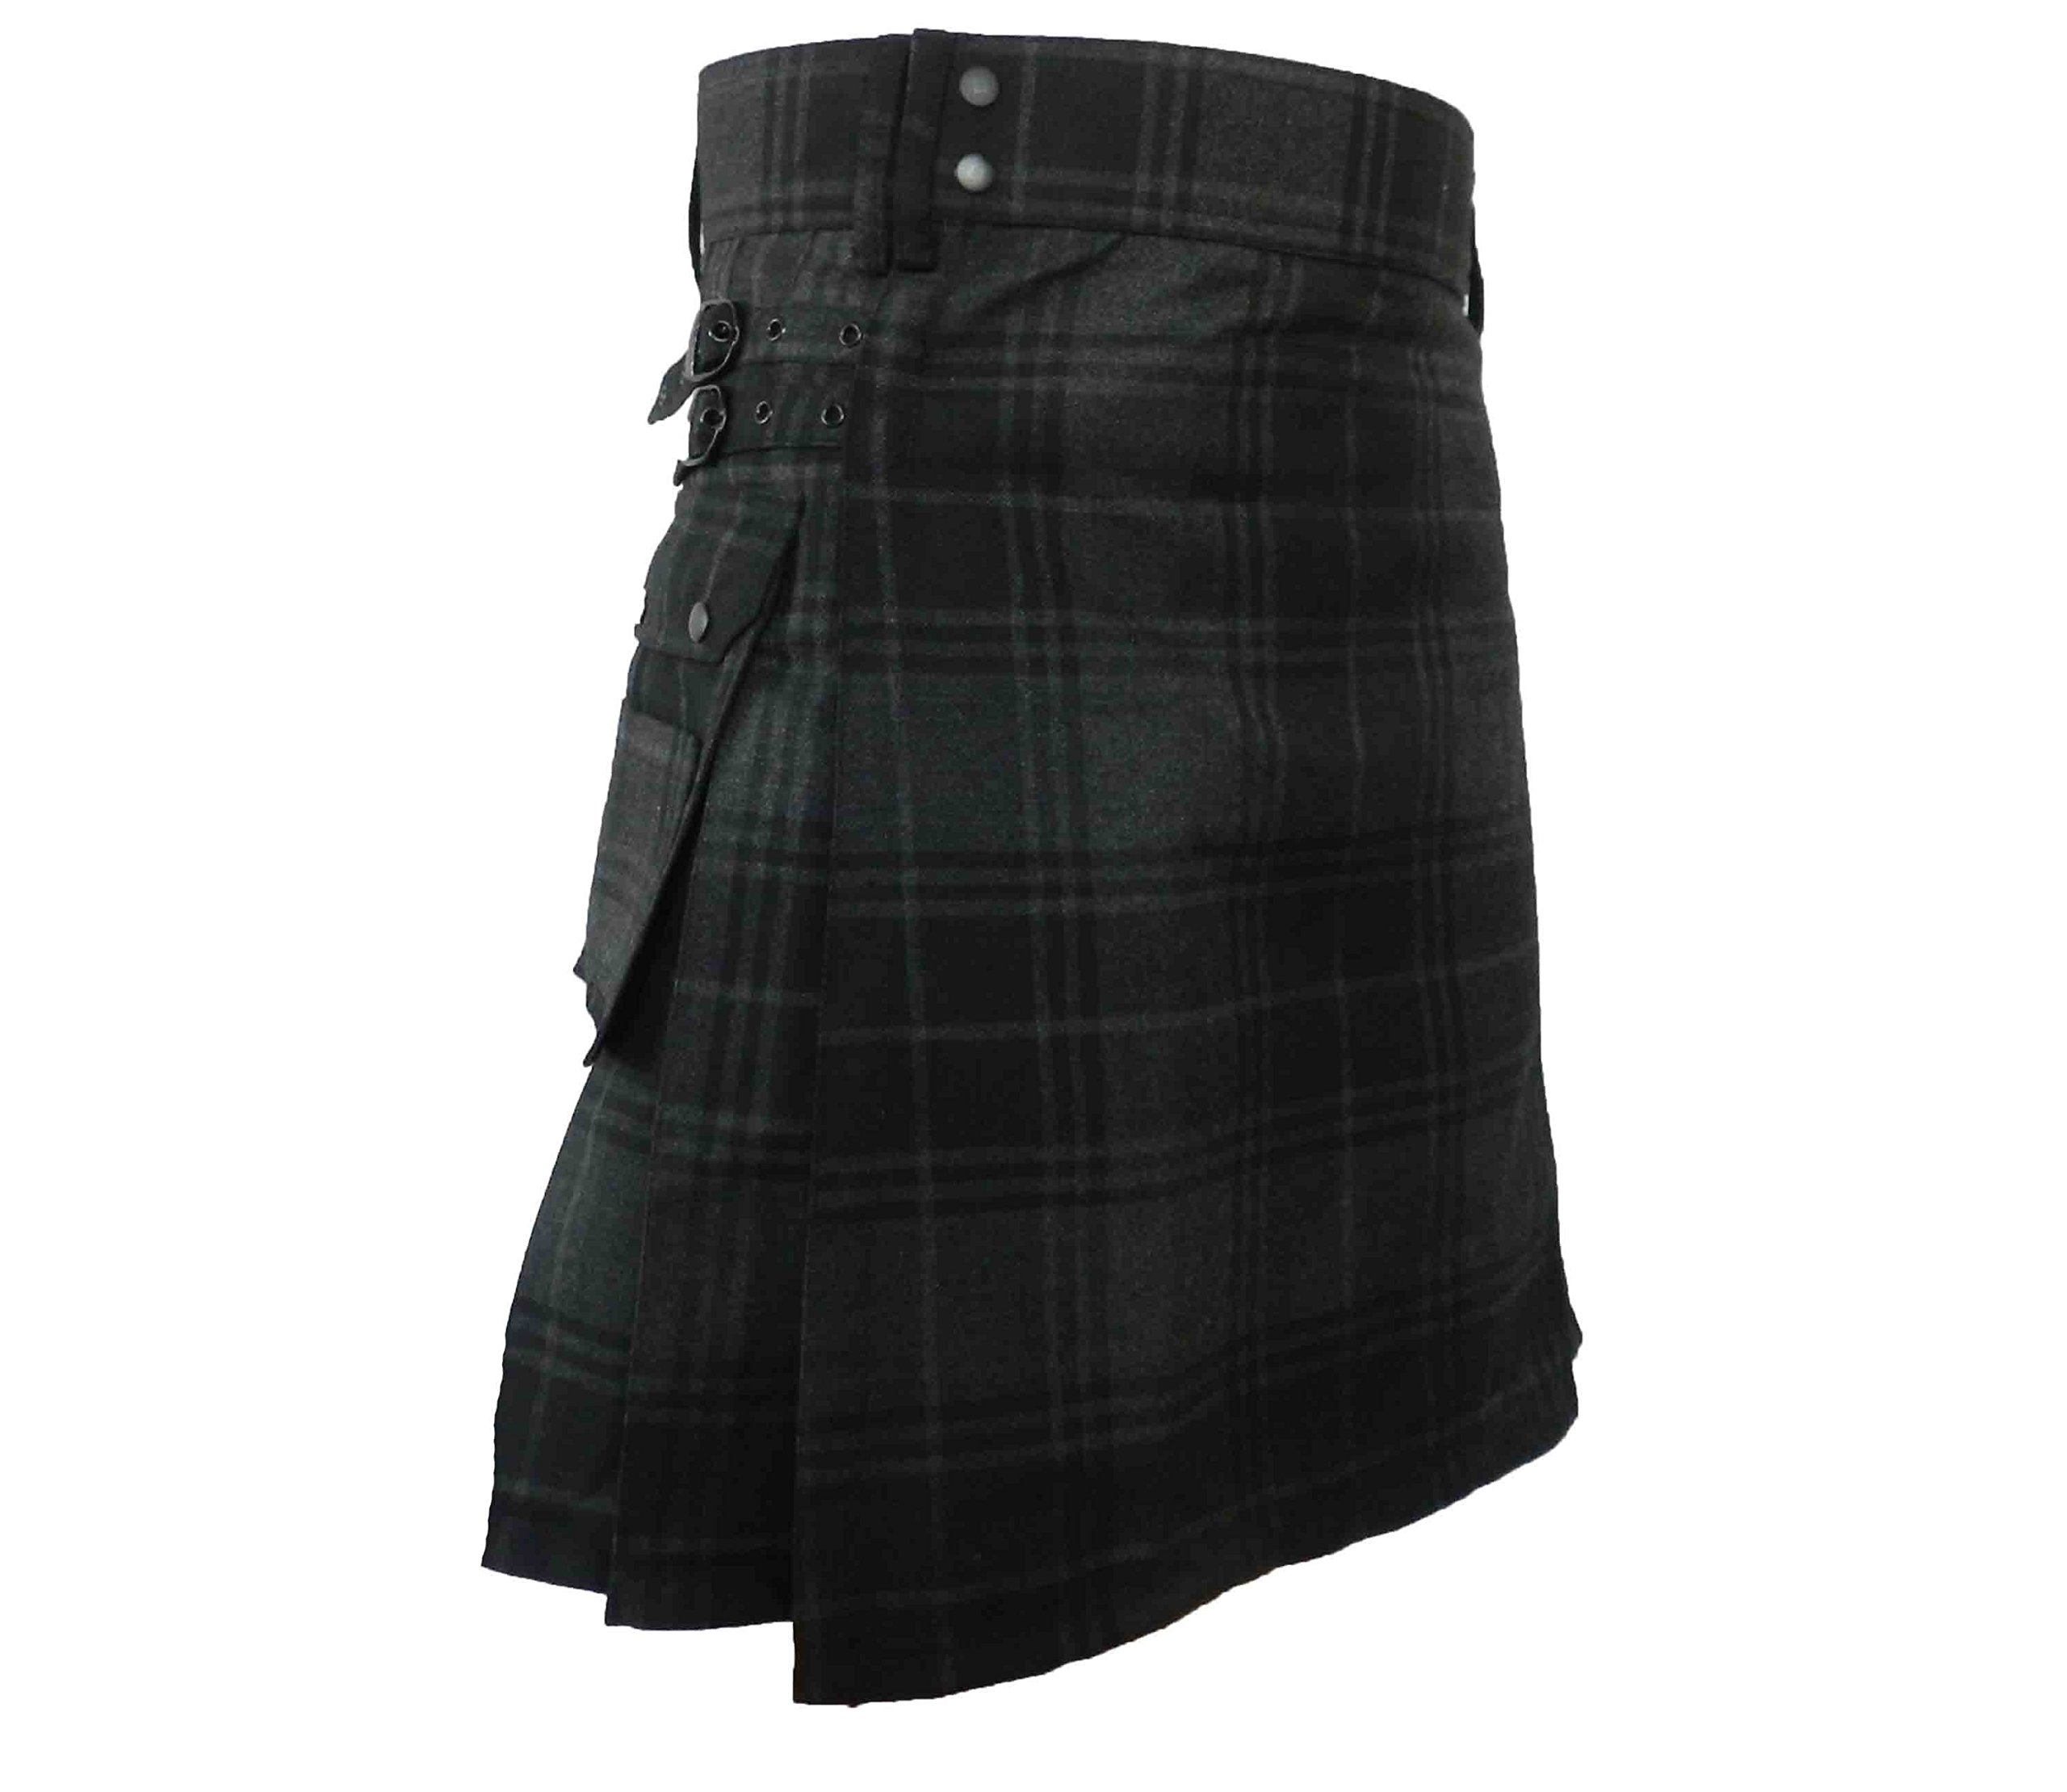 UTKilts Men's Gray Highlander Tartan Utility Kilt (32) by UT Kilts